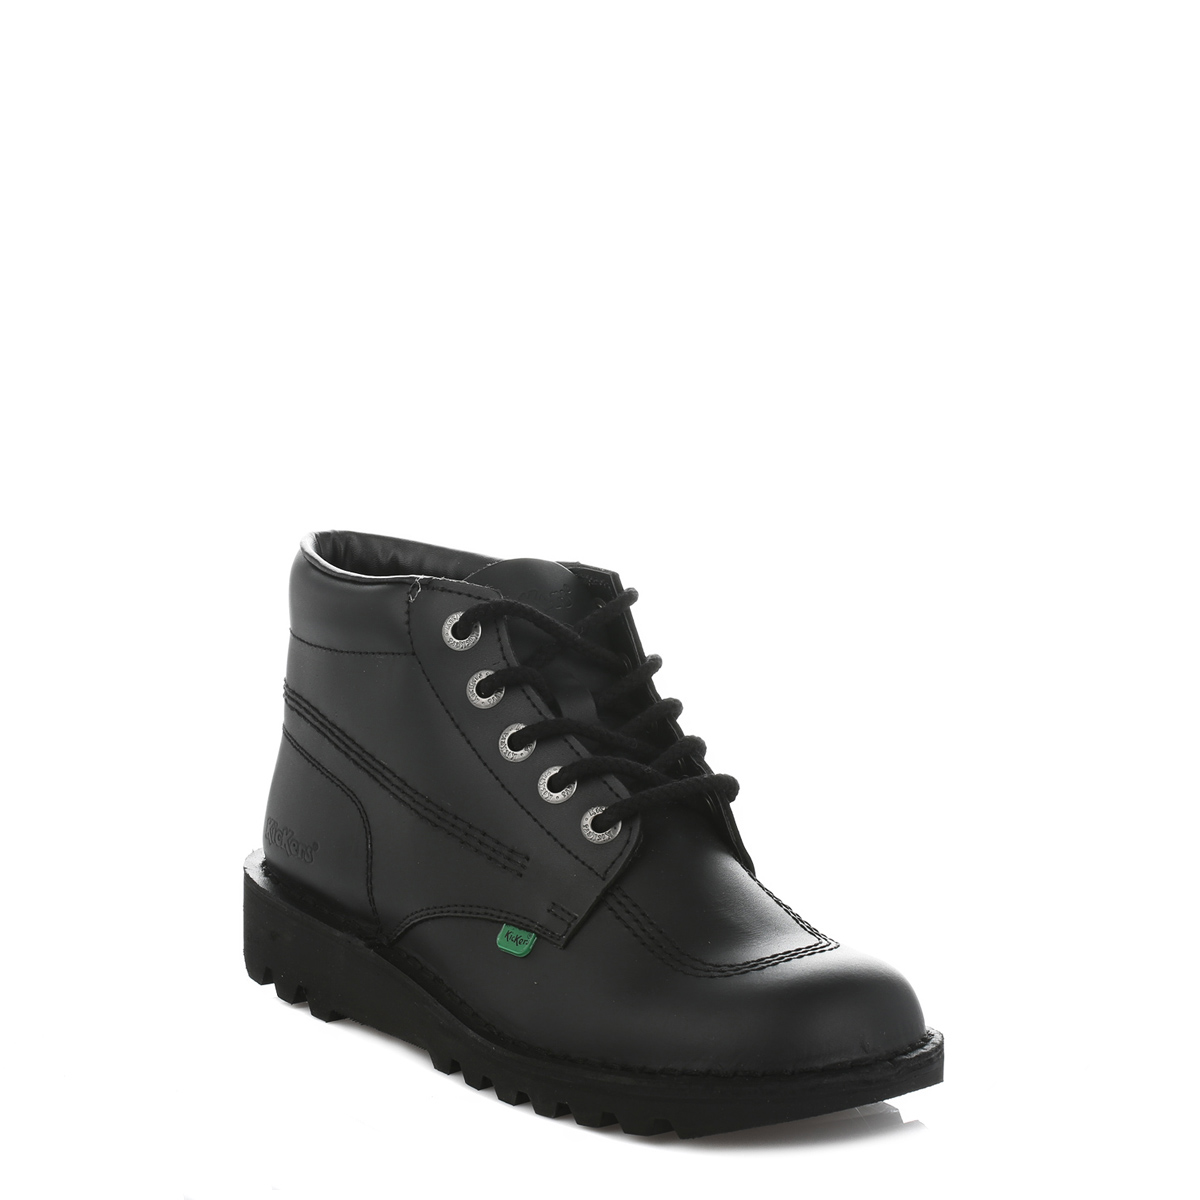 kickers kick hi girls boys kids black leather ankle boots